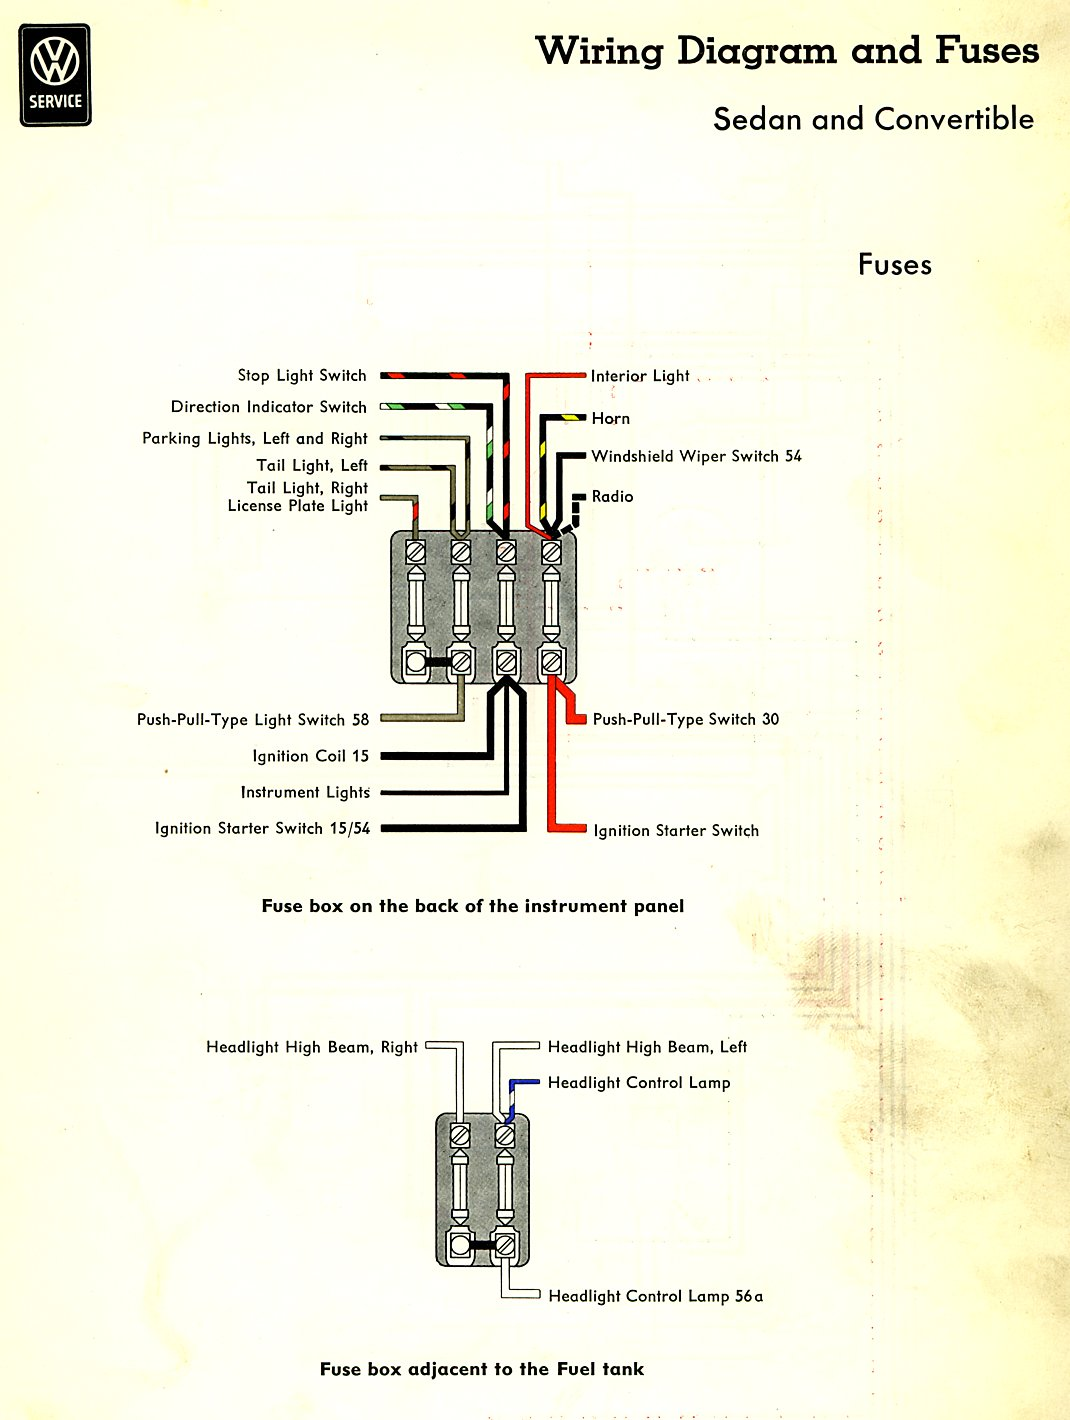 bug_58_fuses thesamba com type 1 wiring diagrams 1974 vw bug fuse box diagram at n-0.co